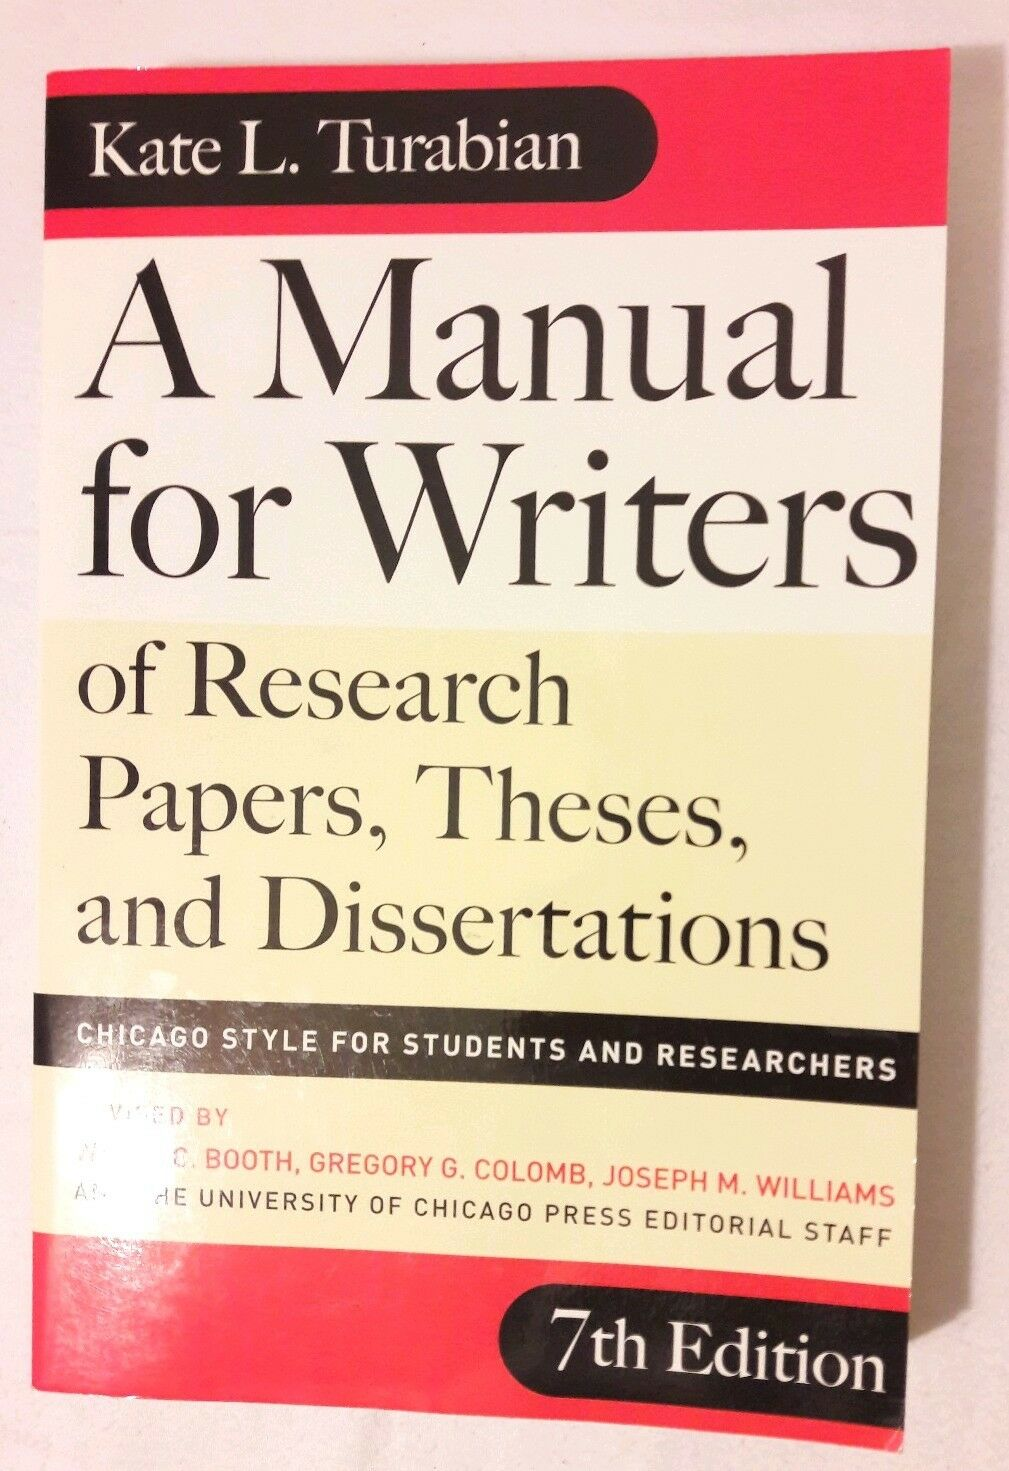 017 Manual For Writers Of Research Papers Theses And Dissertations By Kate L Turabian Paper S Sensational A L. Full